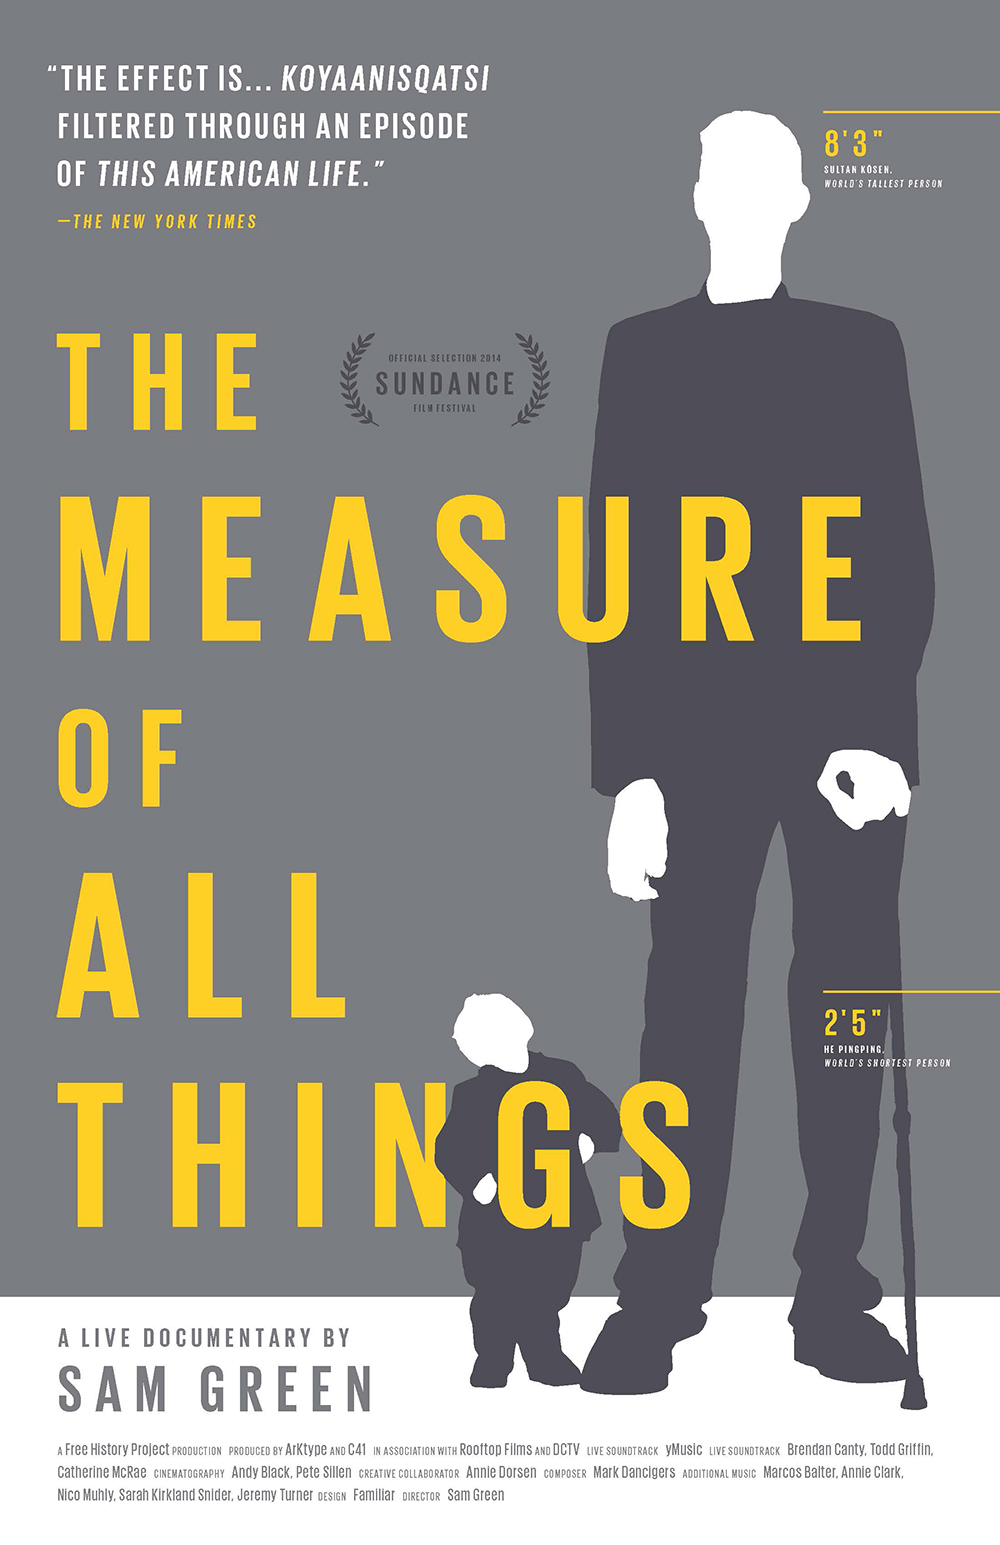 man is the measure of all things